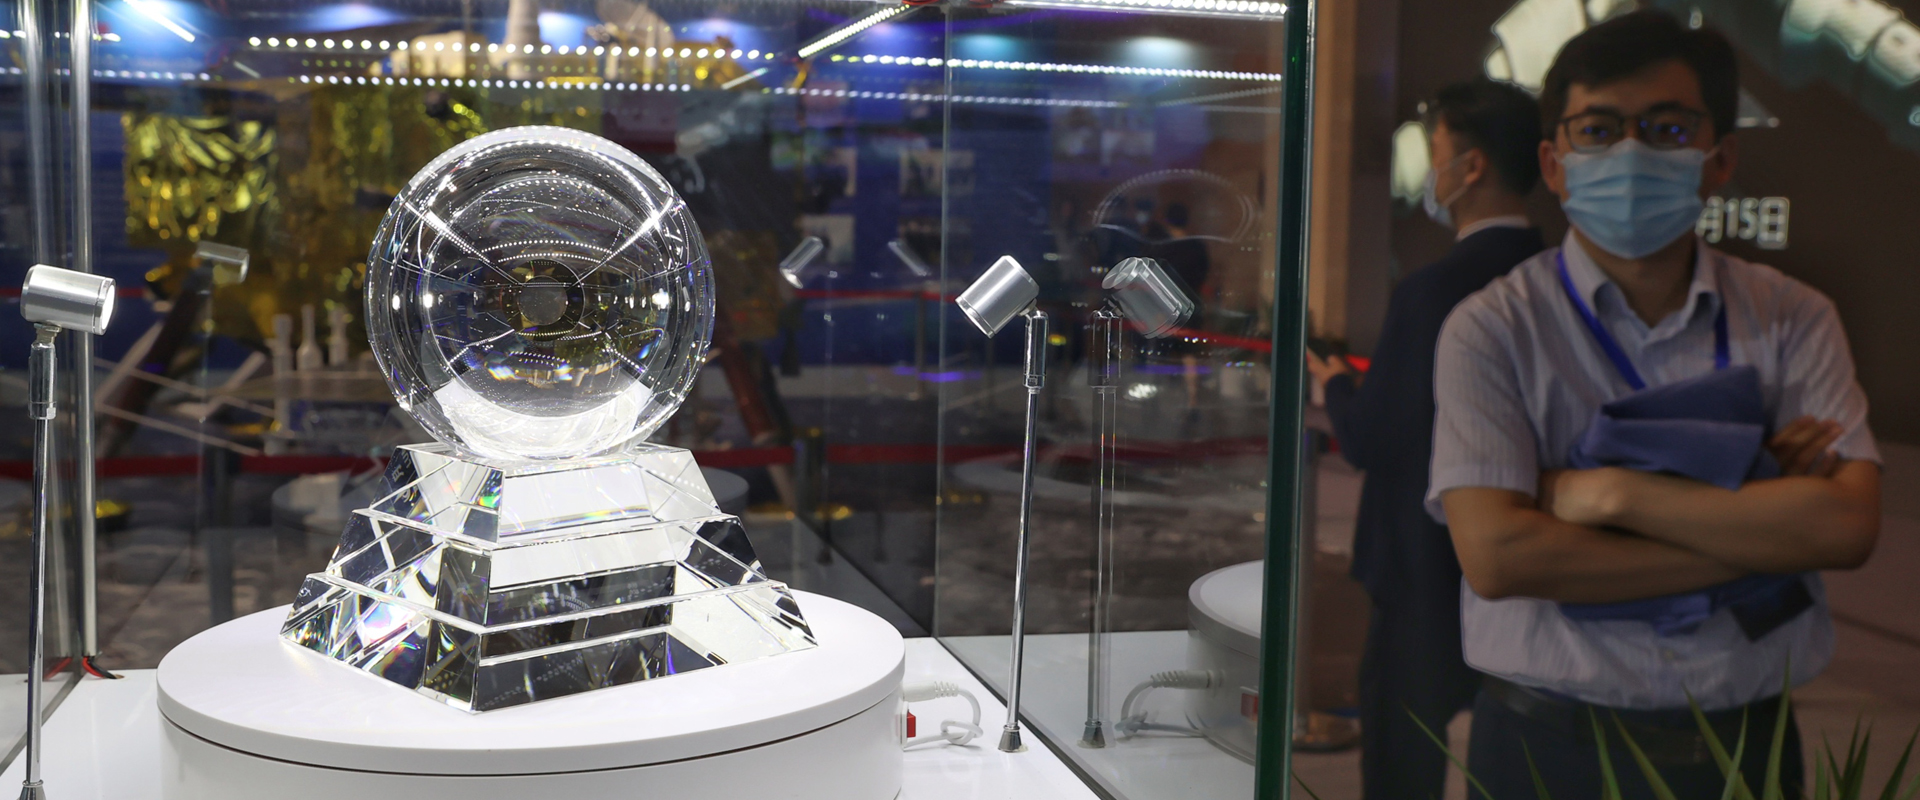 Wuxi exhibition highlights lunar and deep-sea exploration